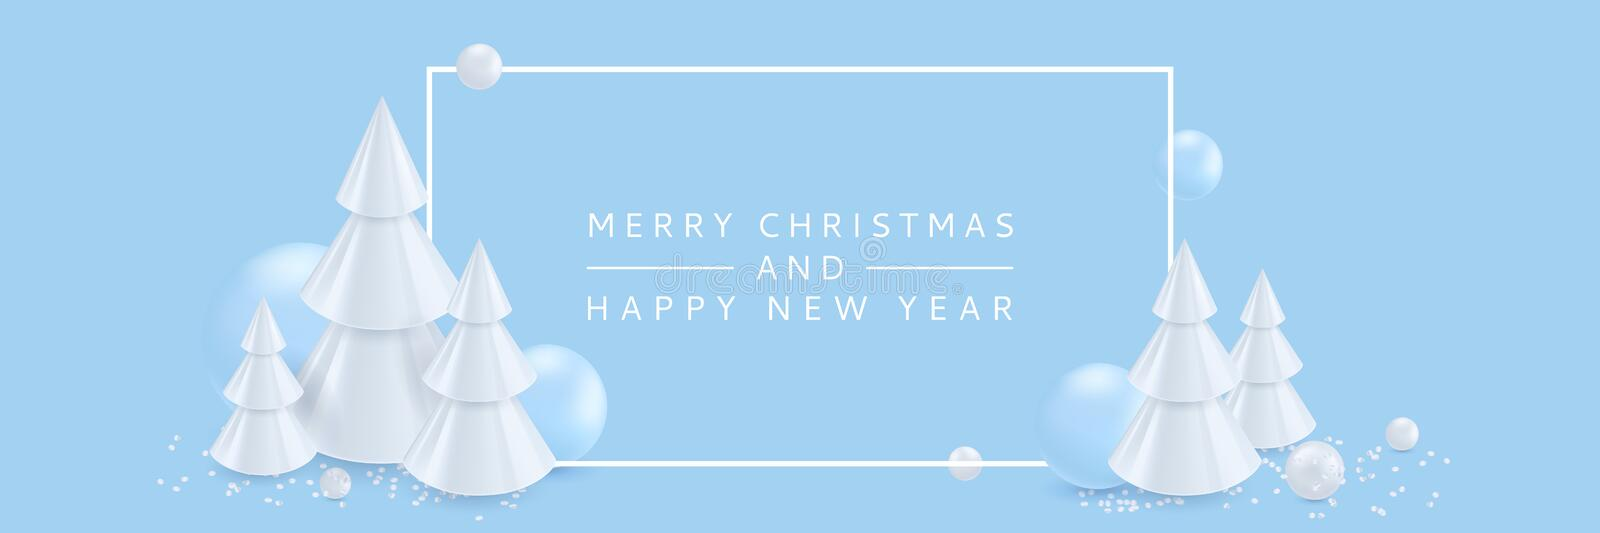 Merry Christmas, Happy New Year banner, poster background. Vector 3d illustration of abstract white Christmas trees stock illustration